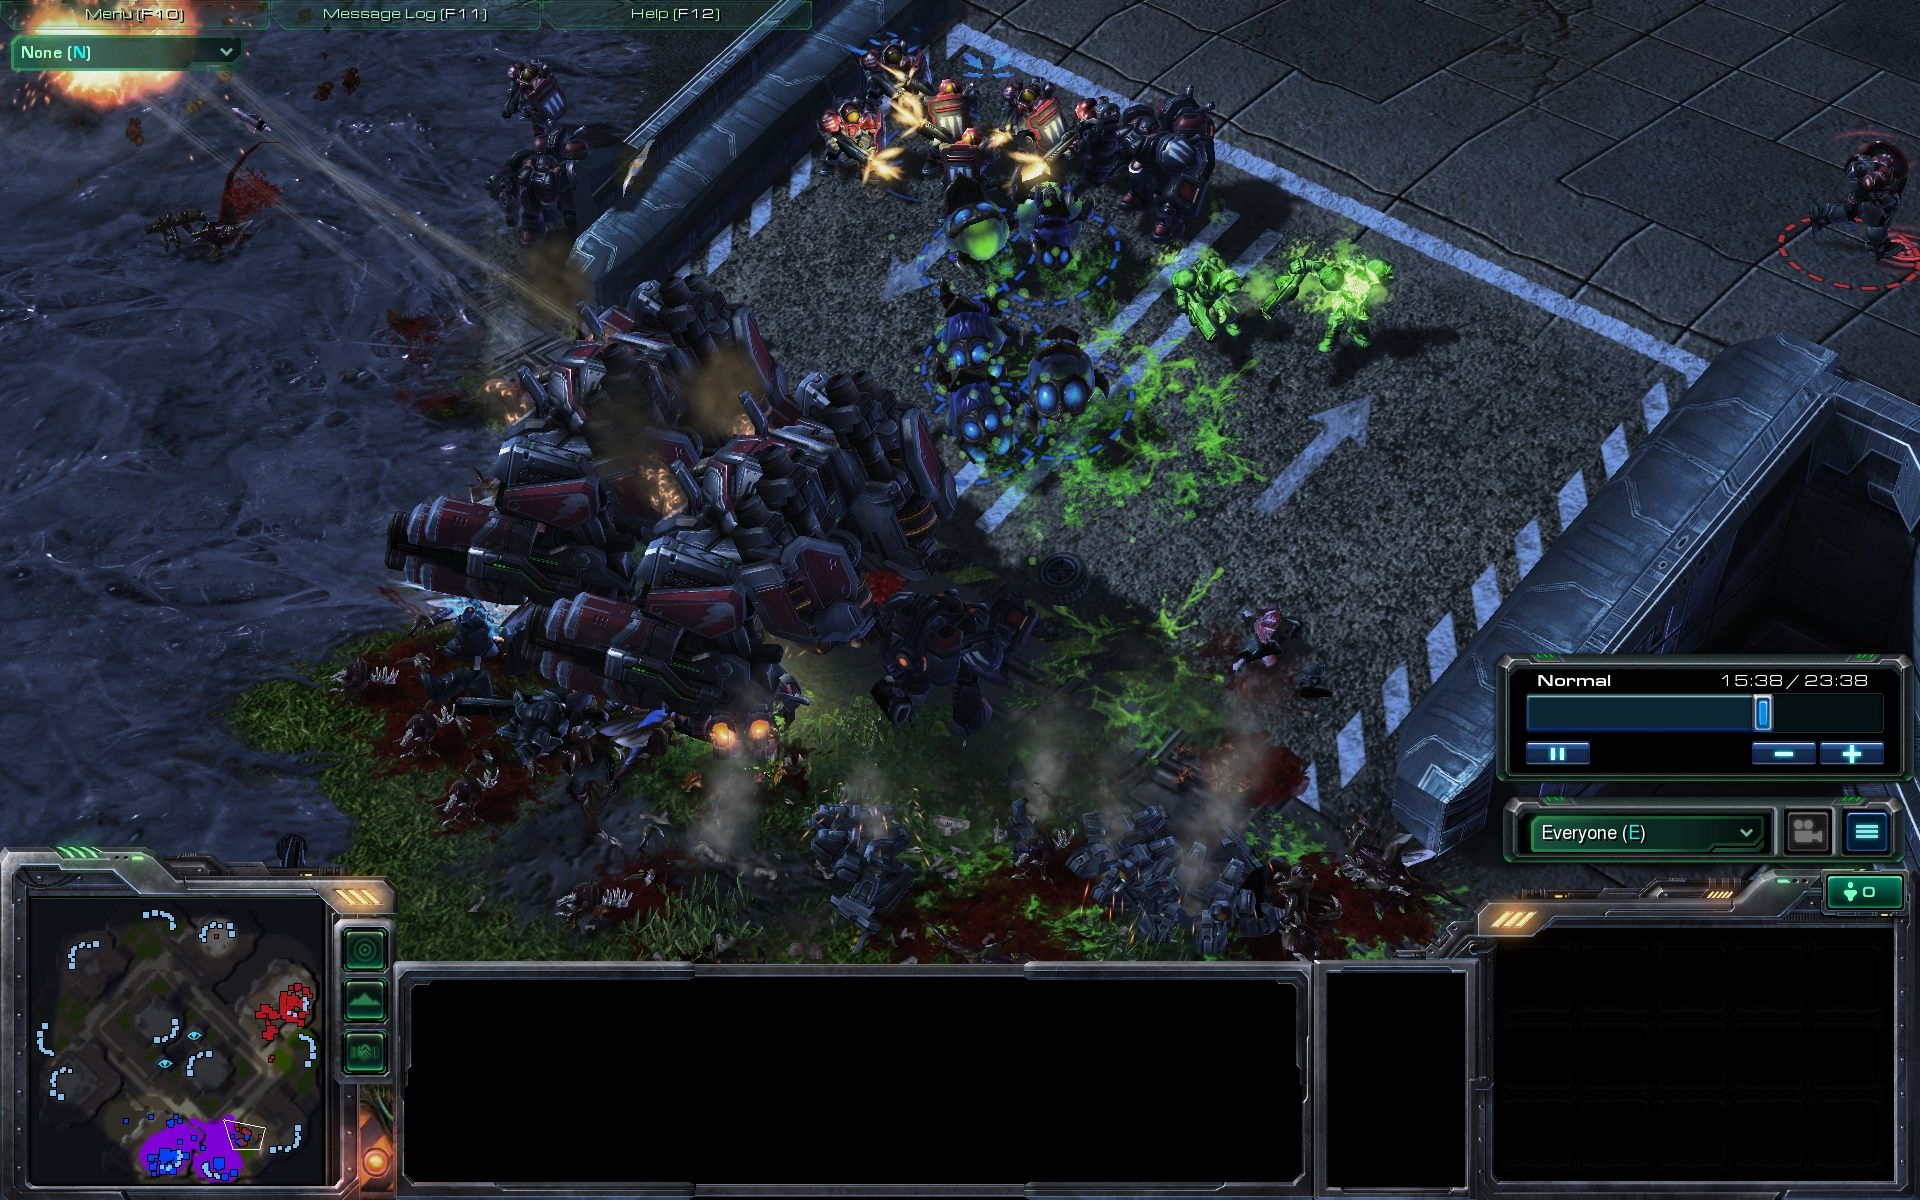 StarCraft II: Wings of Liberty Windows Multiplayer: The final battle is near, leaving blood everywhere.